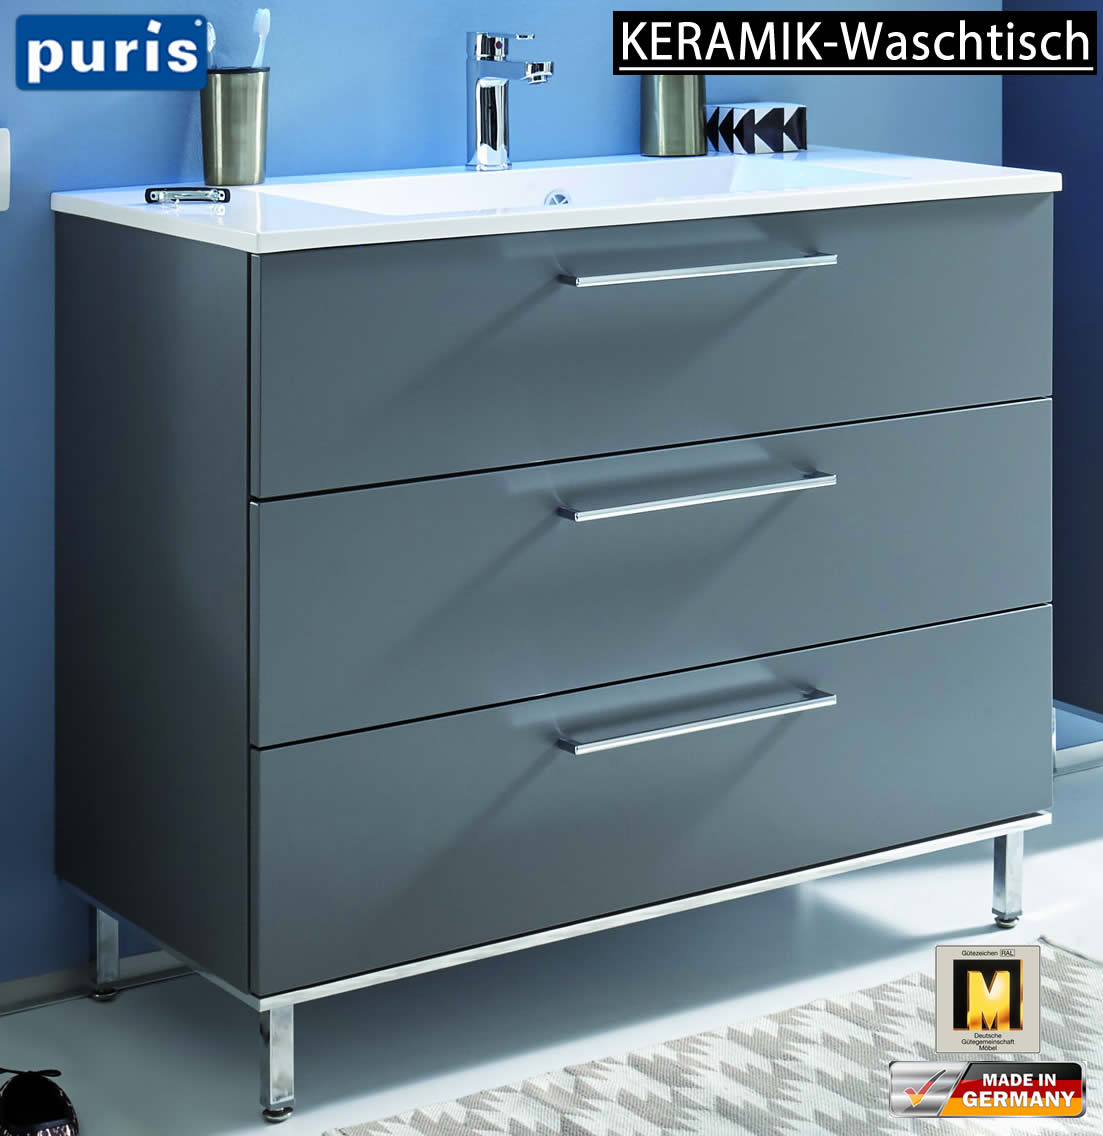 puris quada waschtisch set 100 cm keramik impuls home. Black Bedroom Furniture Sets. Home Design Ideas